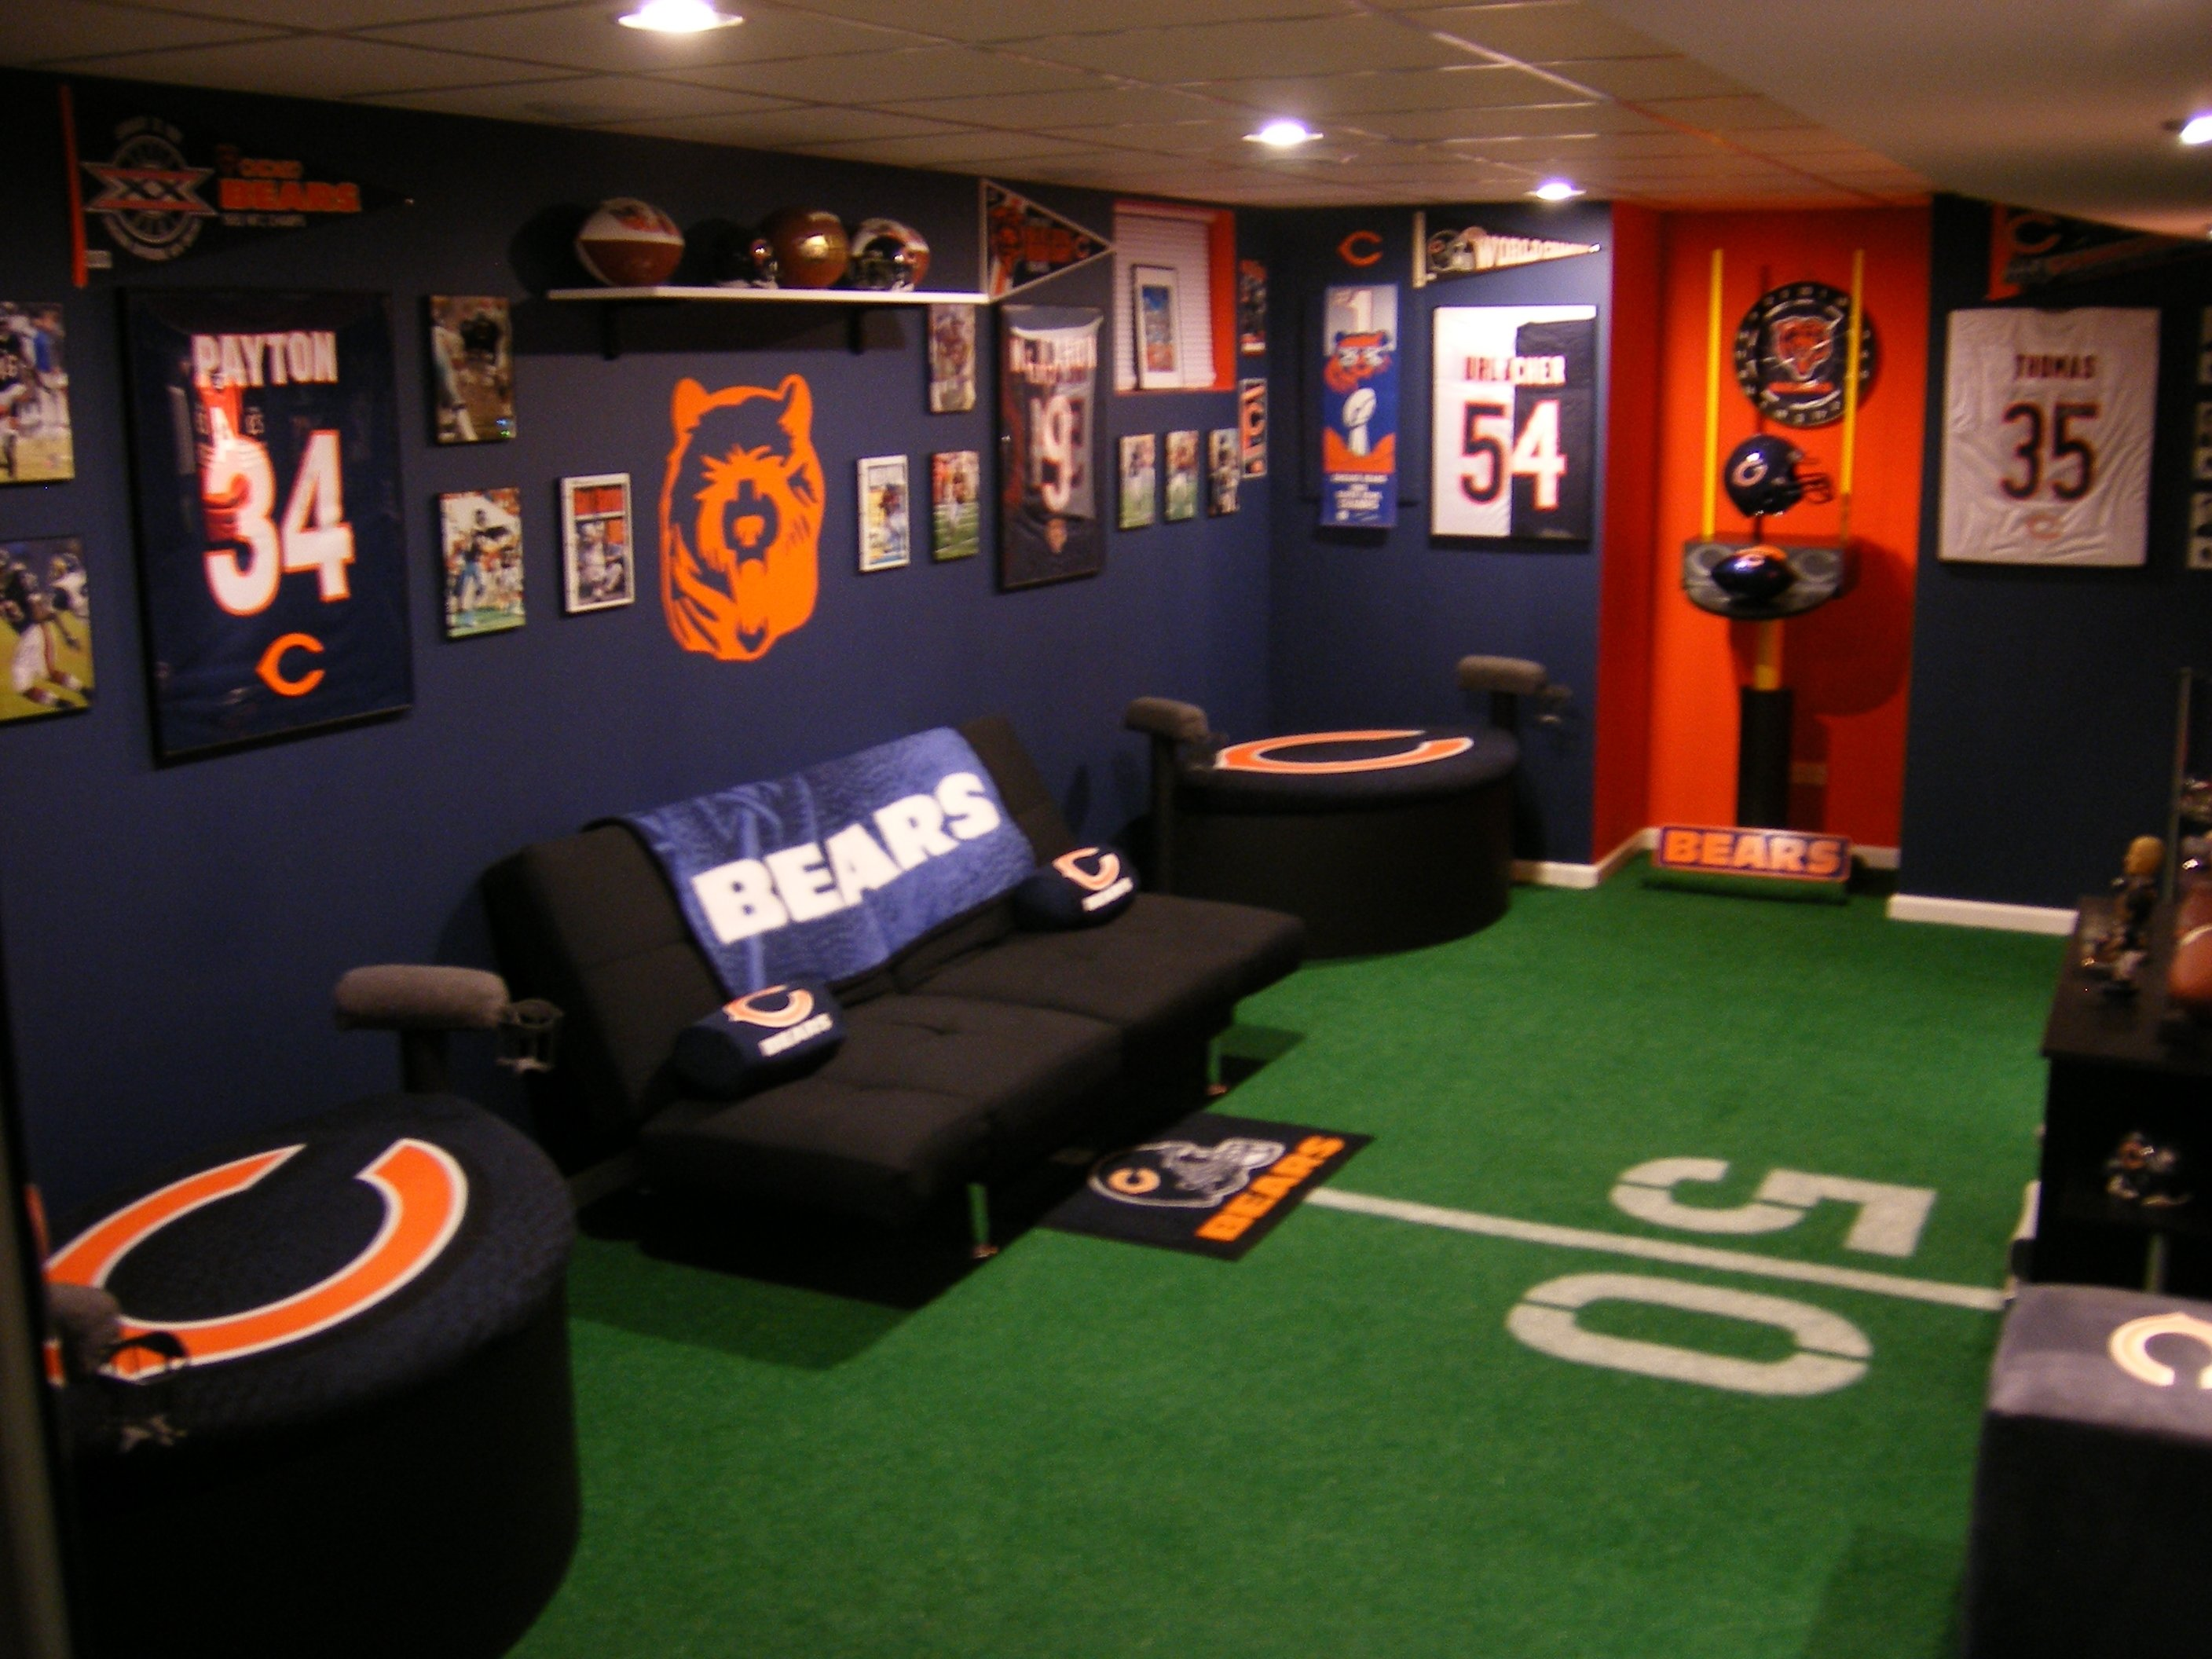 10 Attractive Man Cave Ideas Small Room perfect small man cave ideas bedroom 100 unbelievable photos design 1 2020